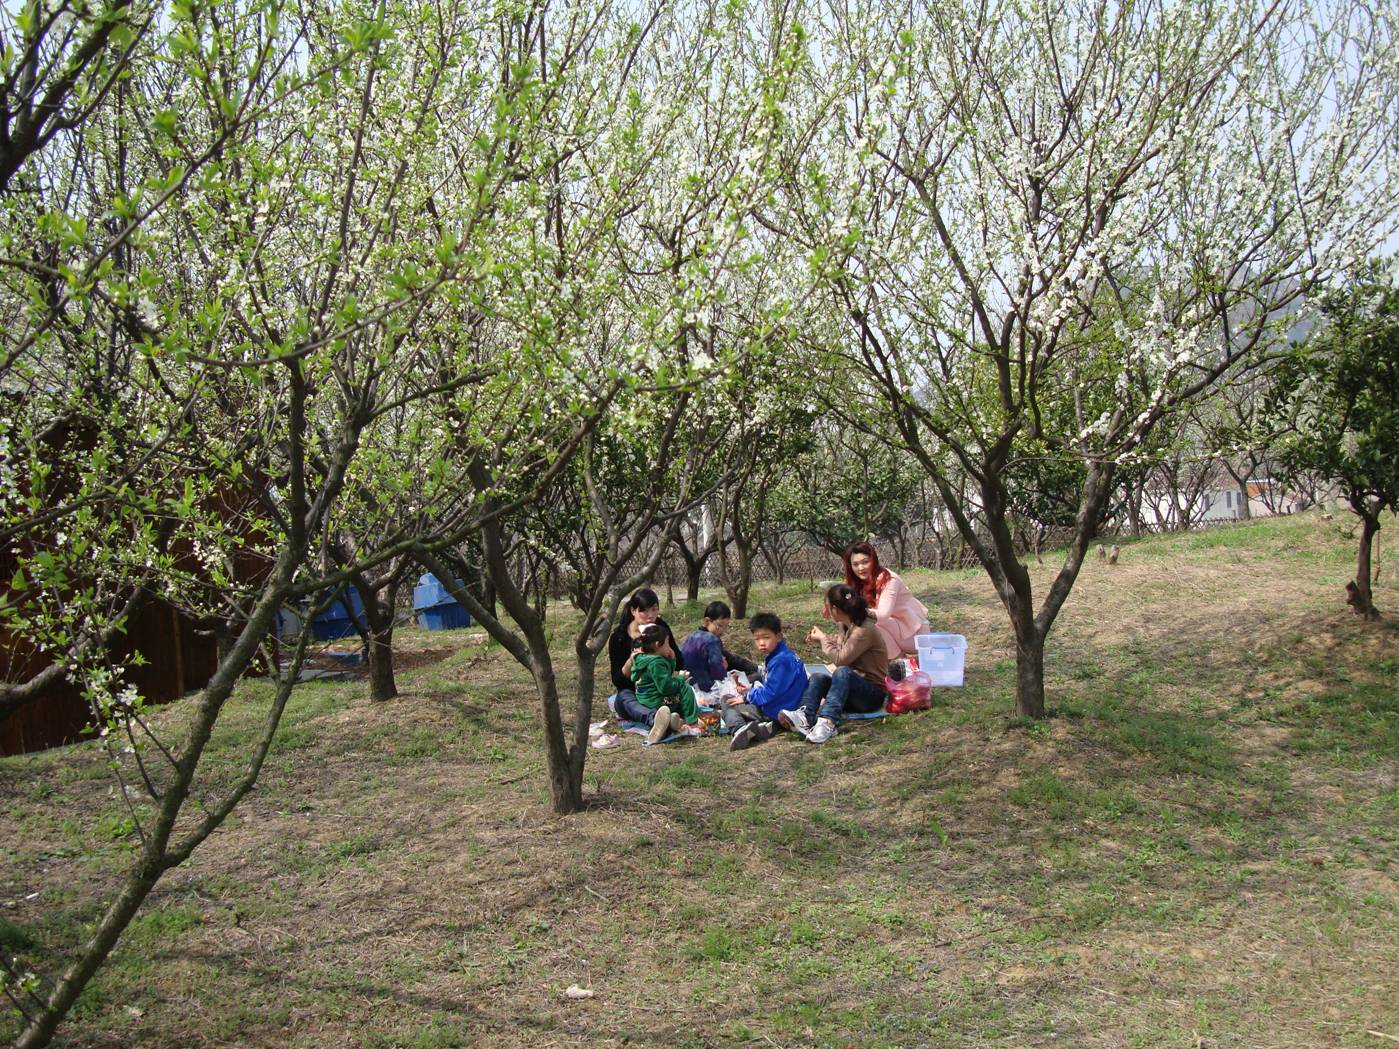 Picture:  A family picnic amid the peach blossoms of Yang Shan, Wuxi, China